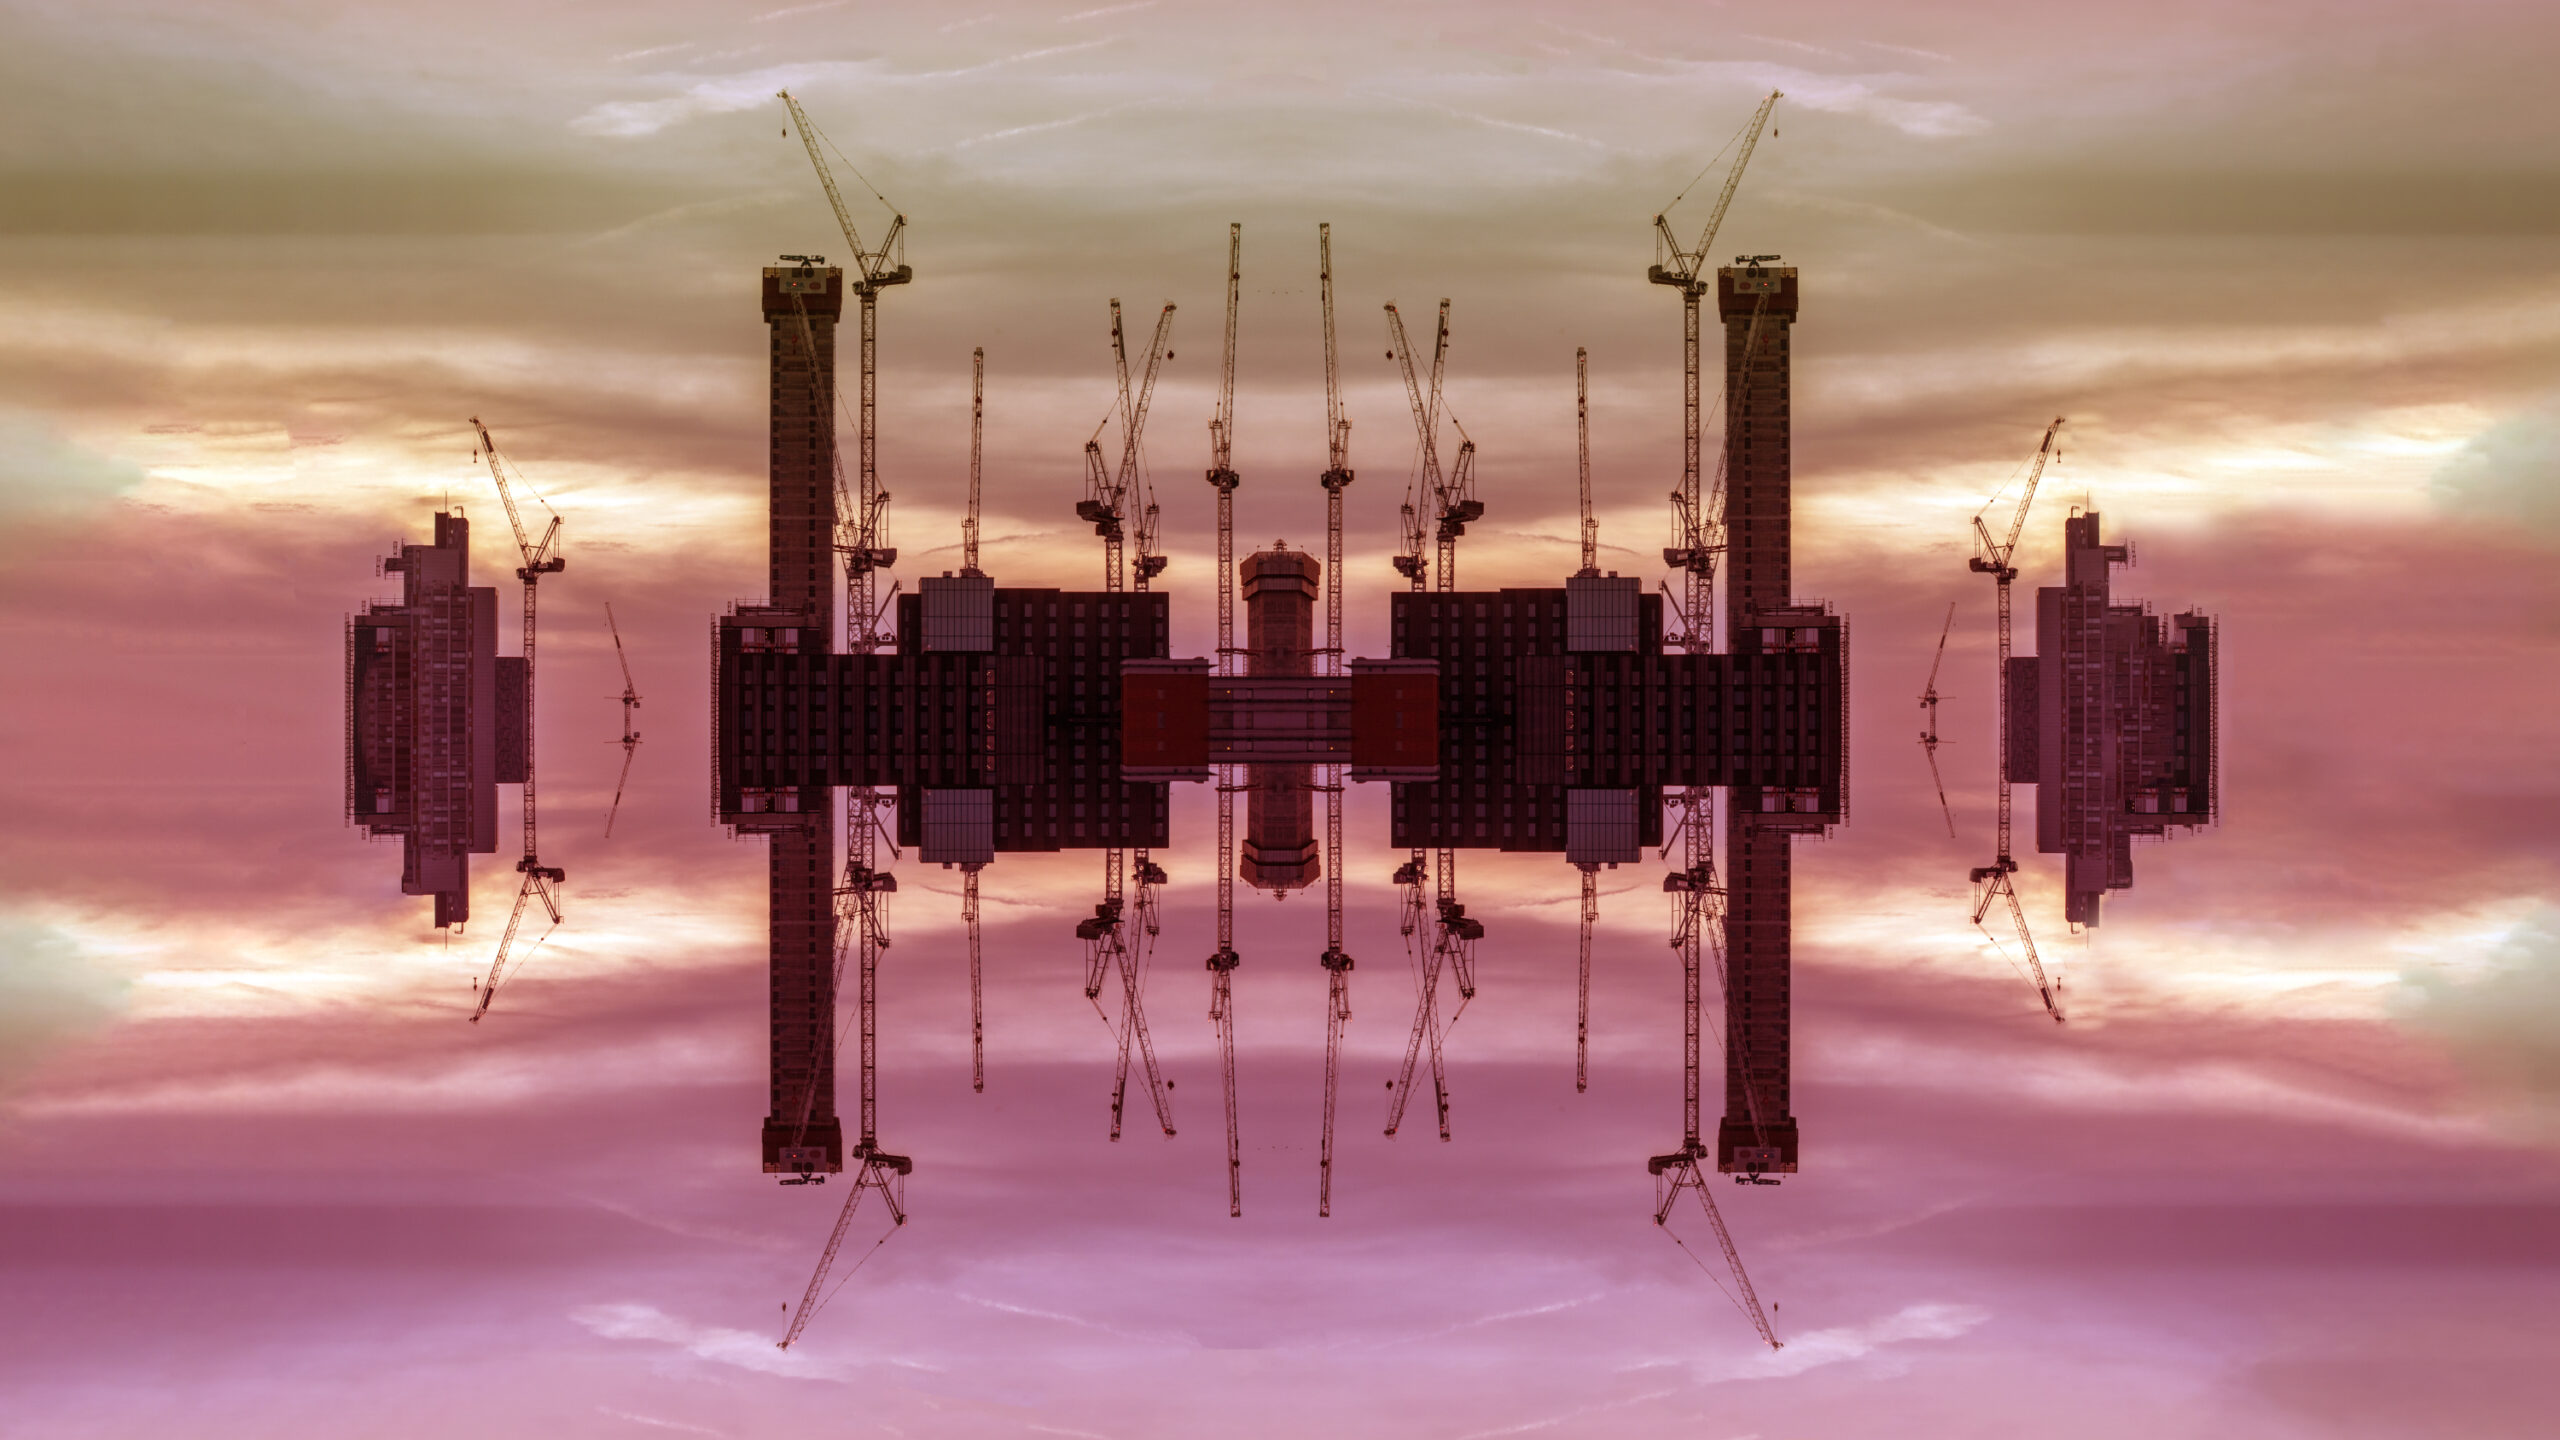 A design made of cranes and buildings against pink clouds